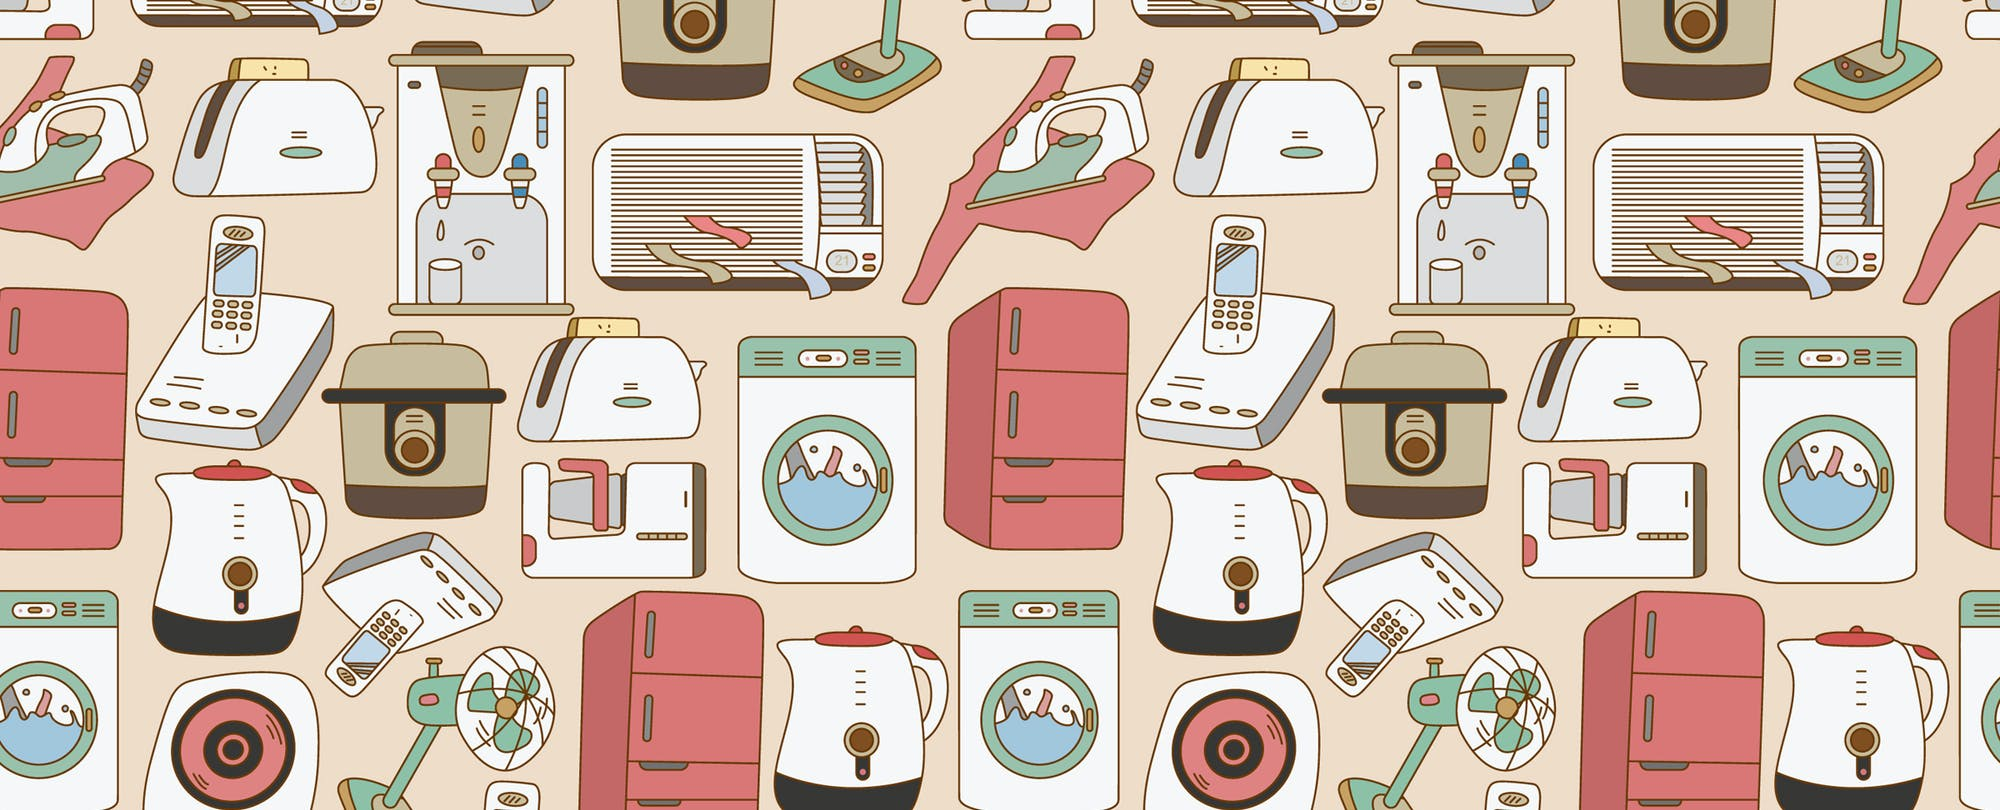 Is Your Edtech Product a Refrigerator or Washing Machine?